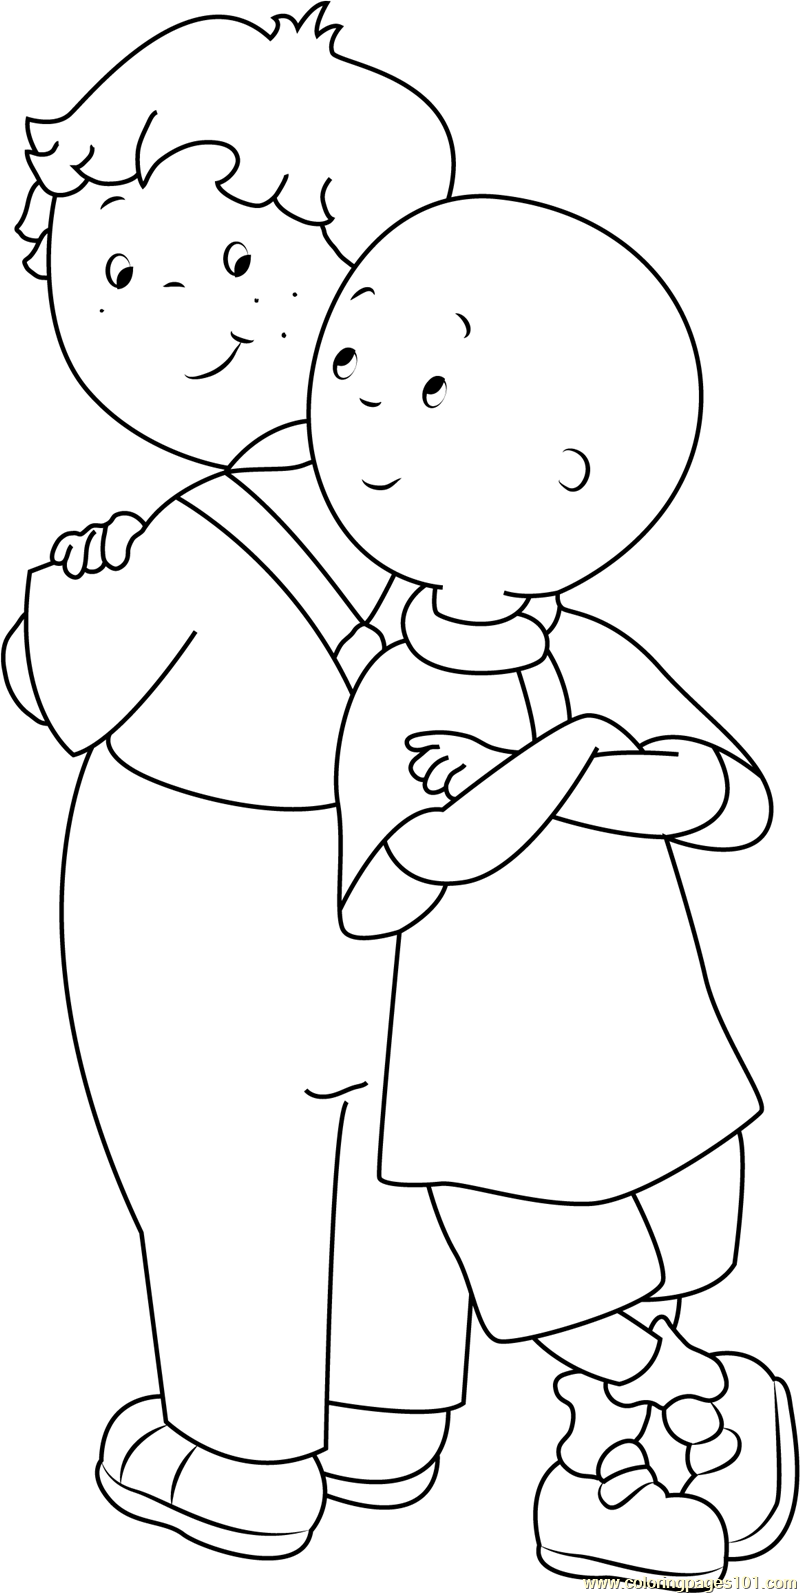 Standing Back to Back Coloring Page Free Caillou